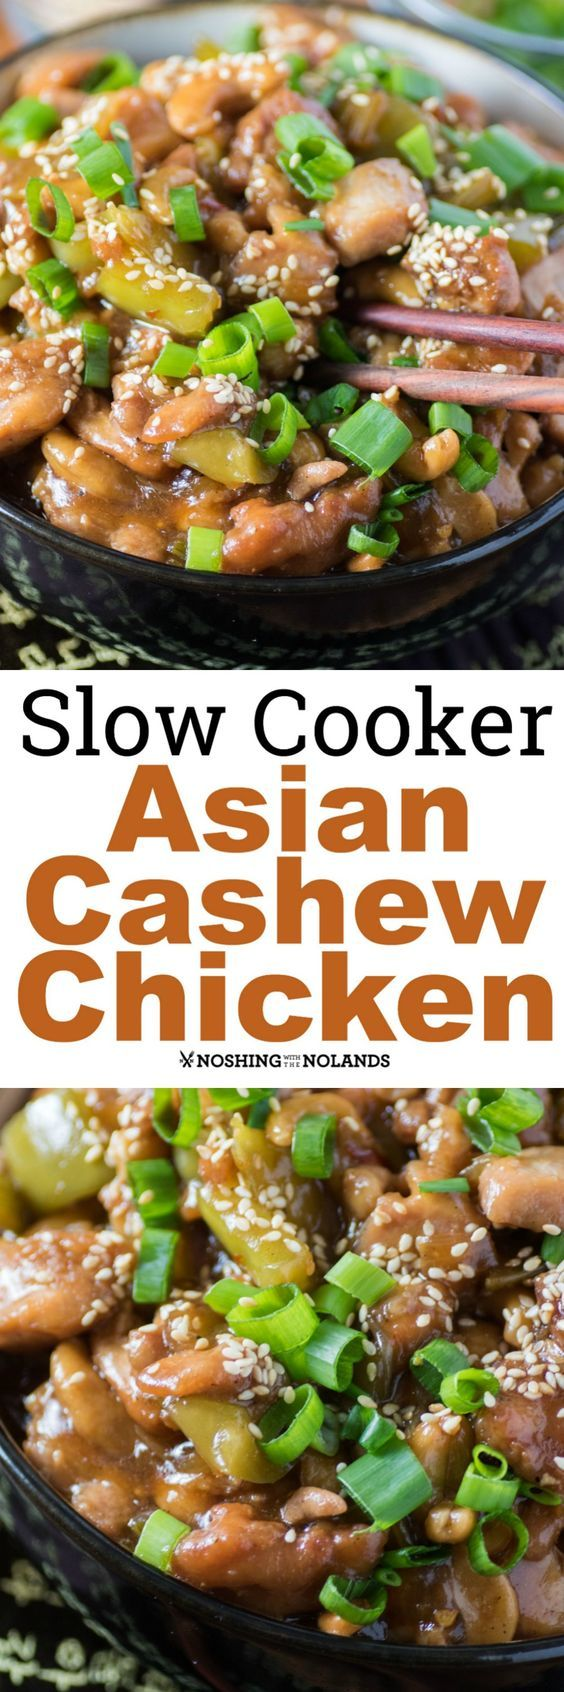 Slow Cooker Asian Cashew Chicken by Noshing With The Nolands is better than any takeout. You'll be making this for your family again and again. #ad